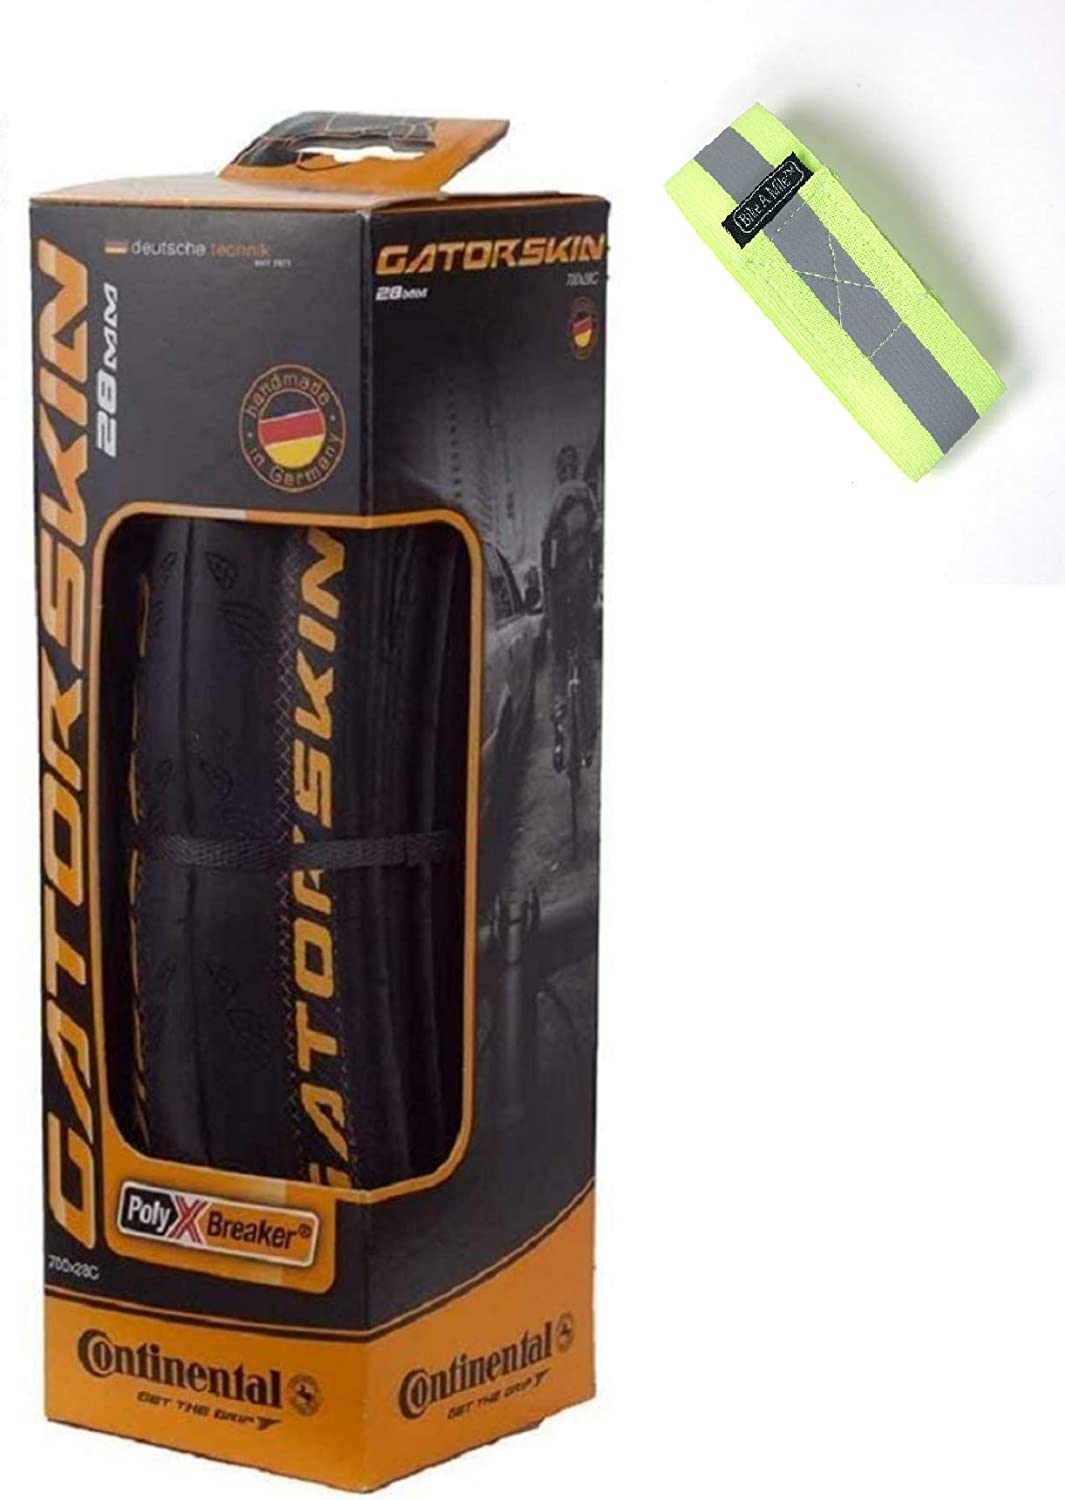 Bike A Mile Continental GatorSkin Bike Tires